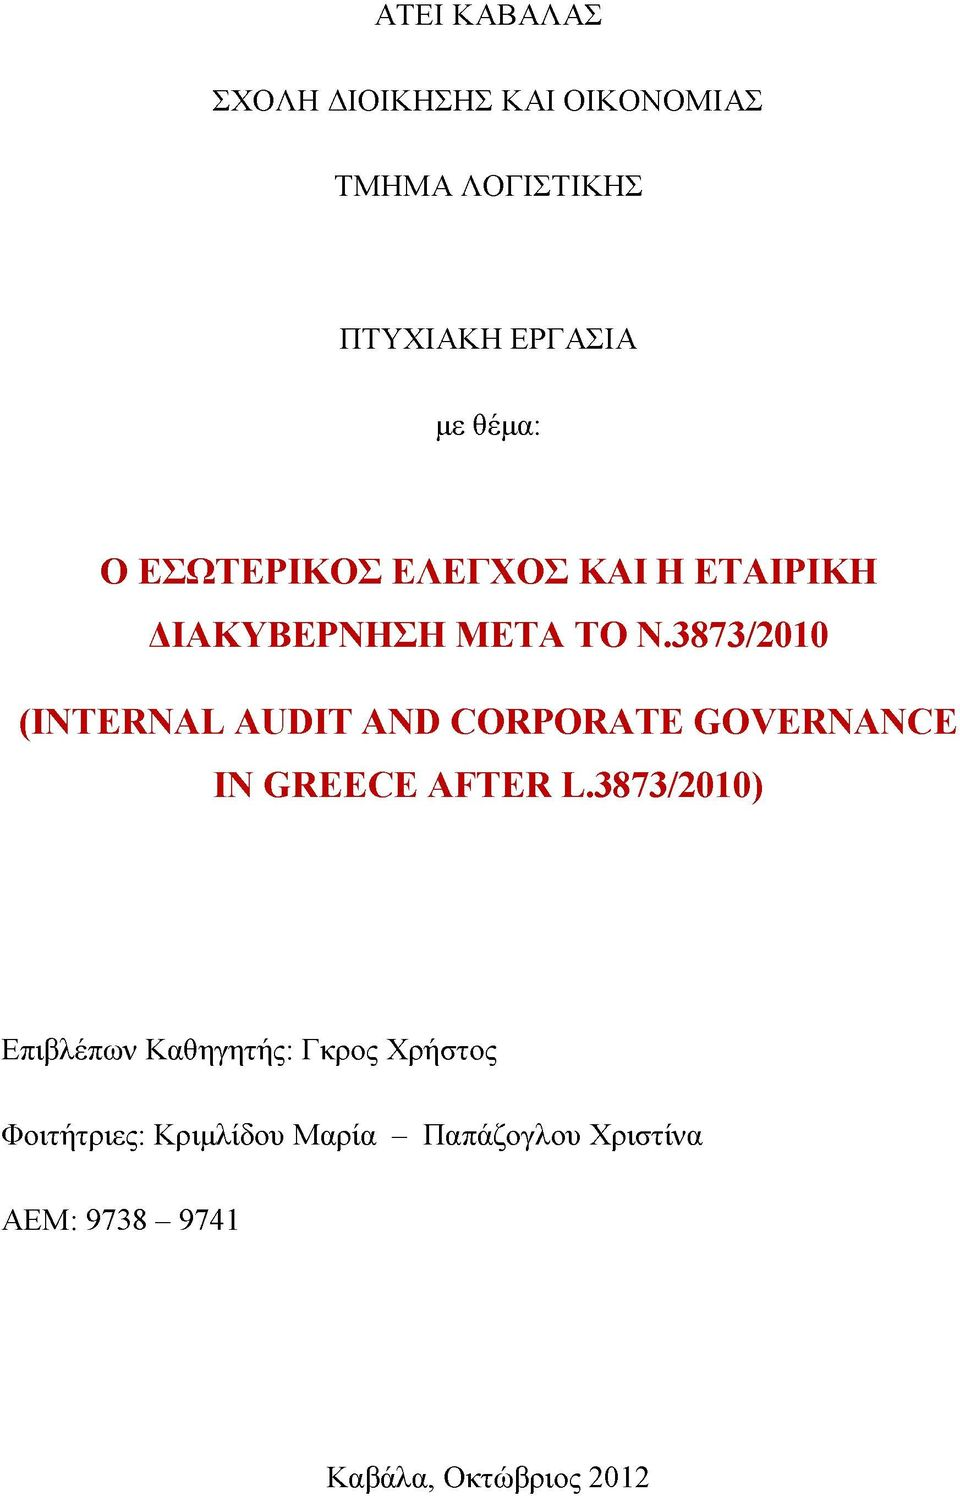 3873/2010 (INTERNAL AUDIT AND CORPORATE GOVERNANCE IN GREECE AFTER L.